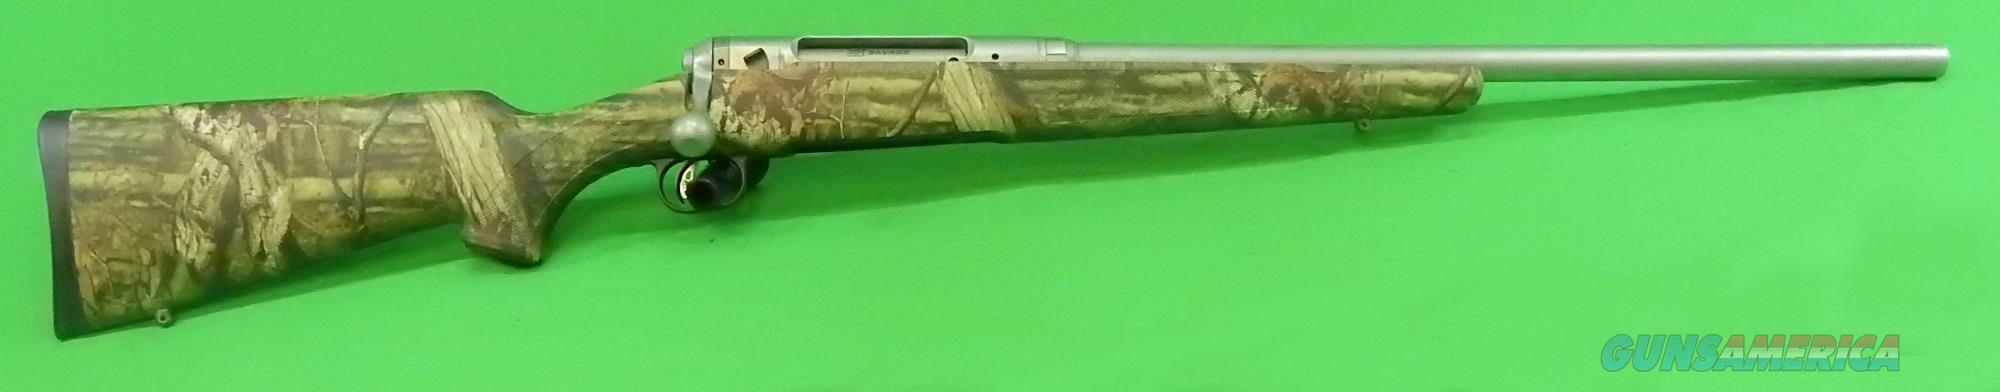 220 Slug Gun Camo SS 20Ga 22In 19641  Guns > Shotguns > Savage Shotguns